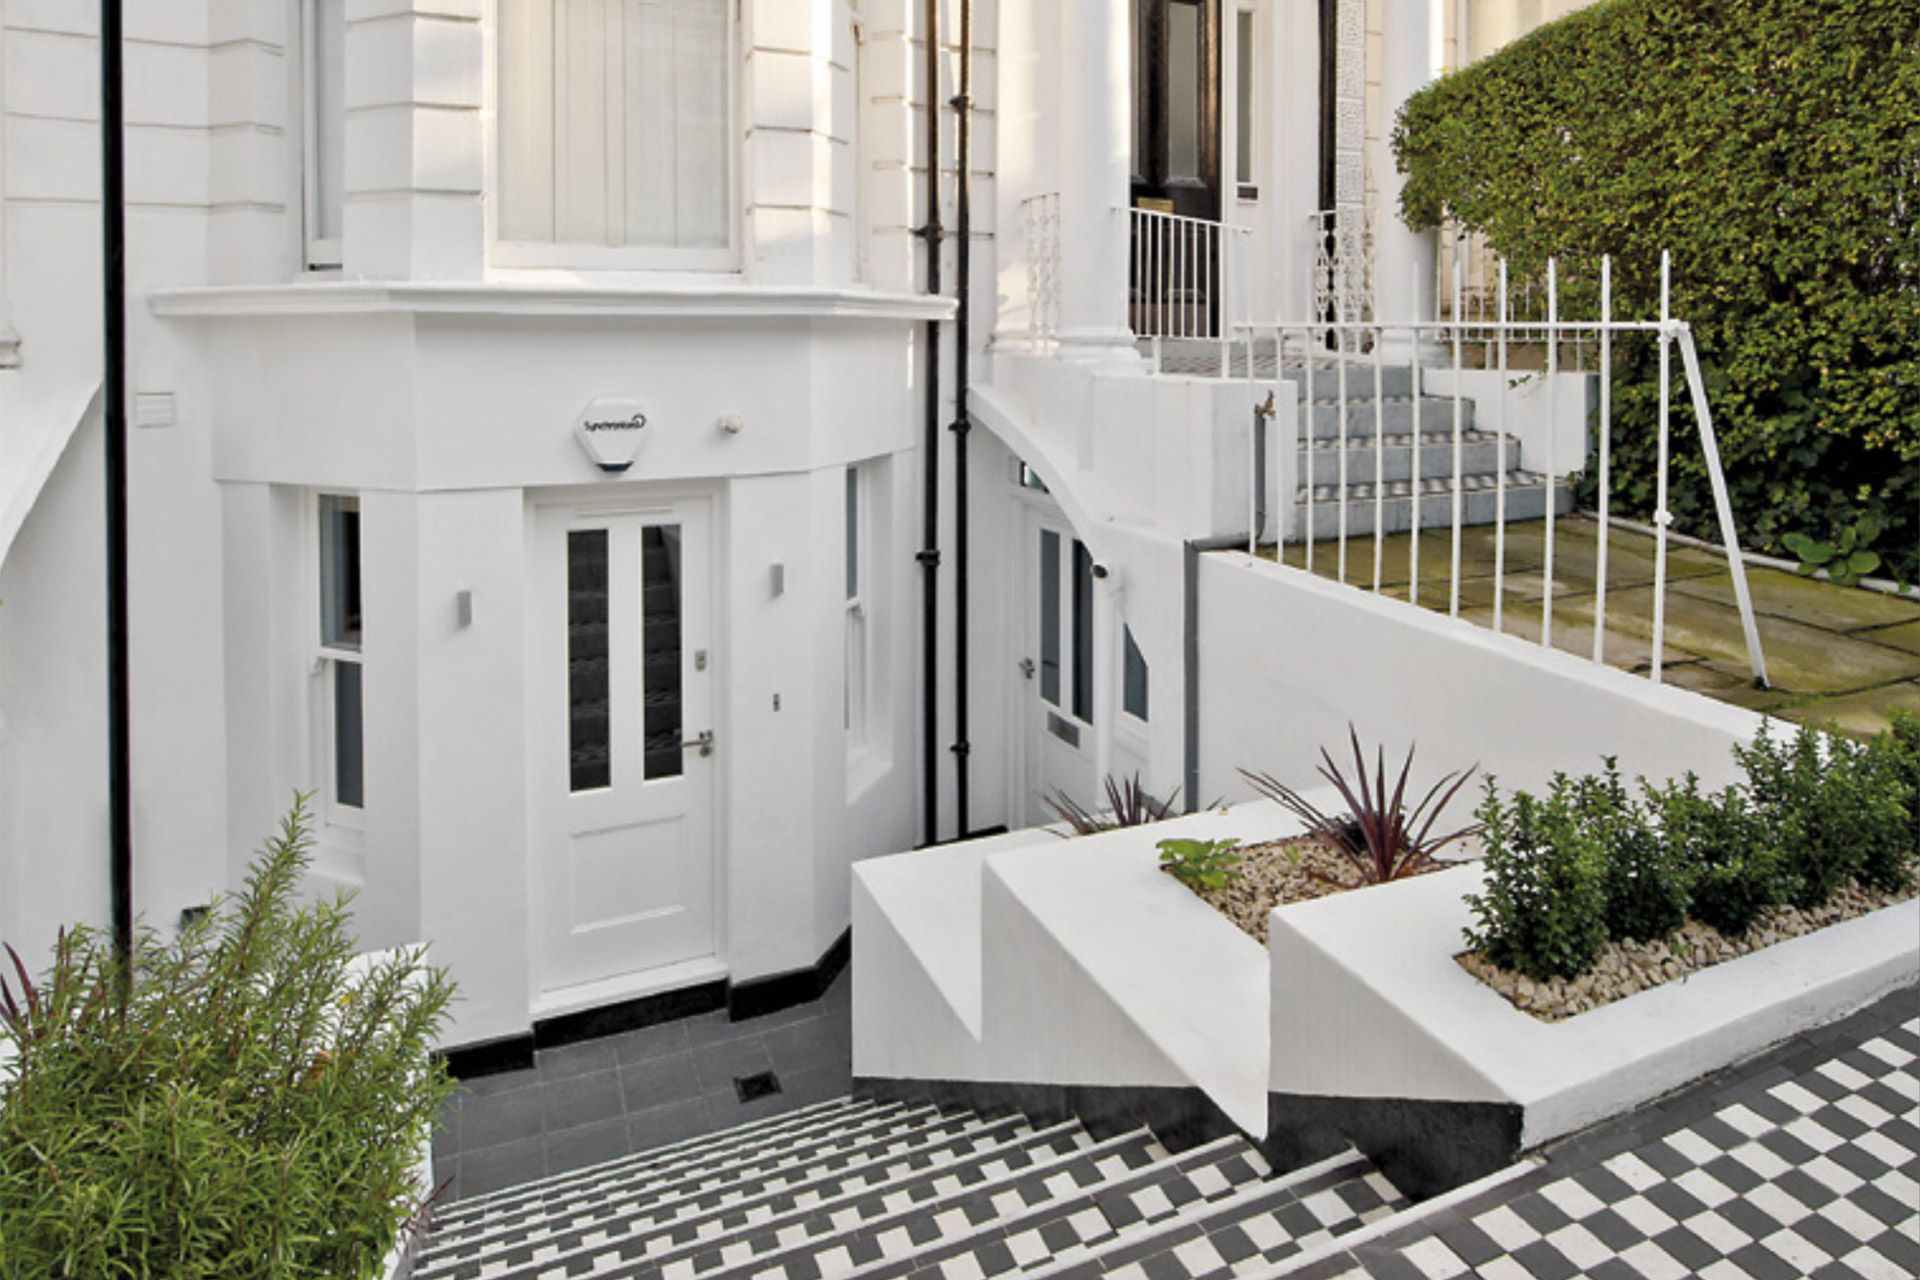 Stylish entrance to the Gladstone vacation rental offered by London Perfect